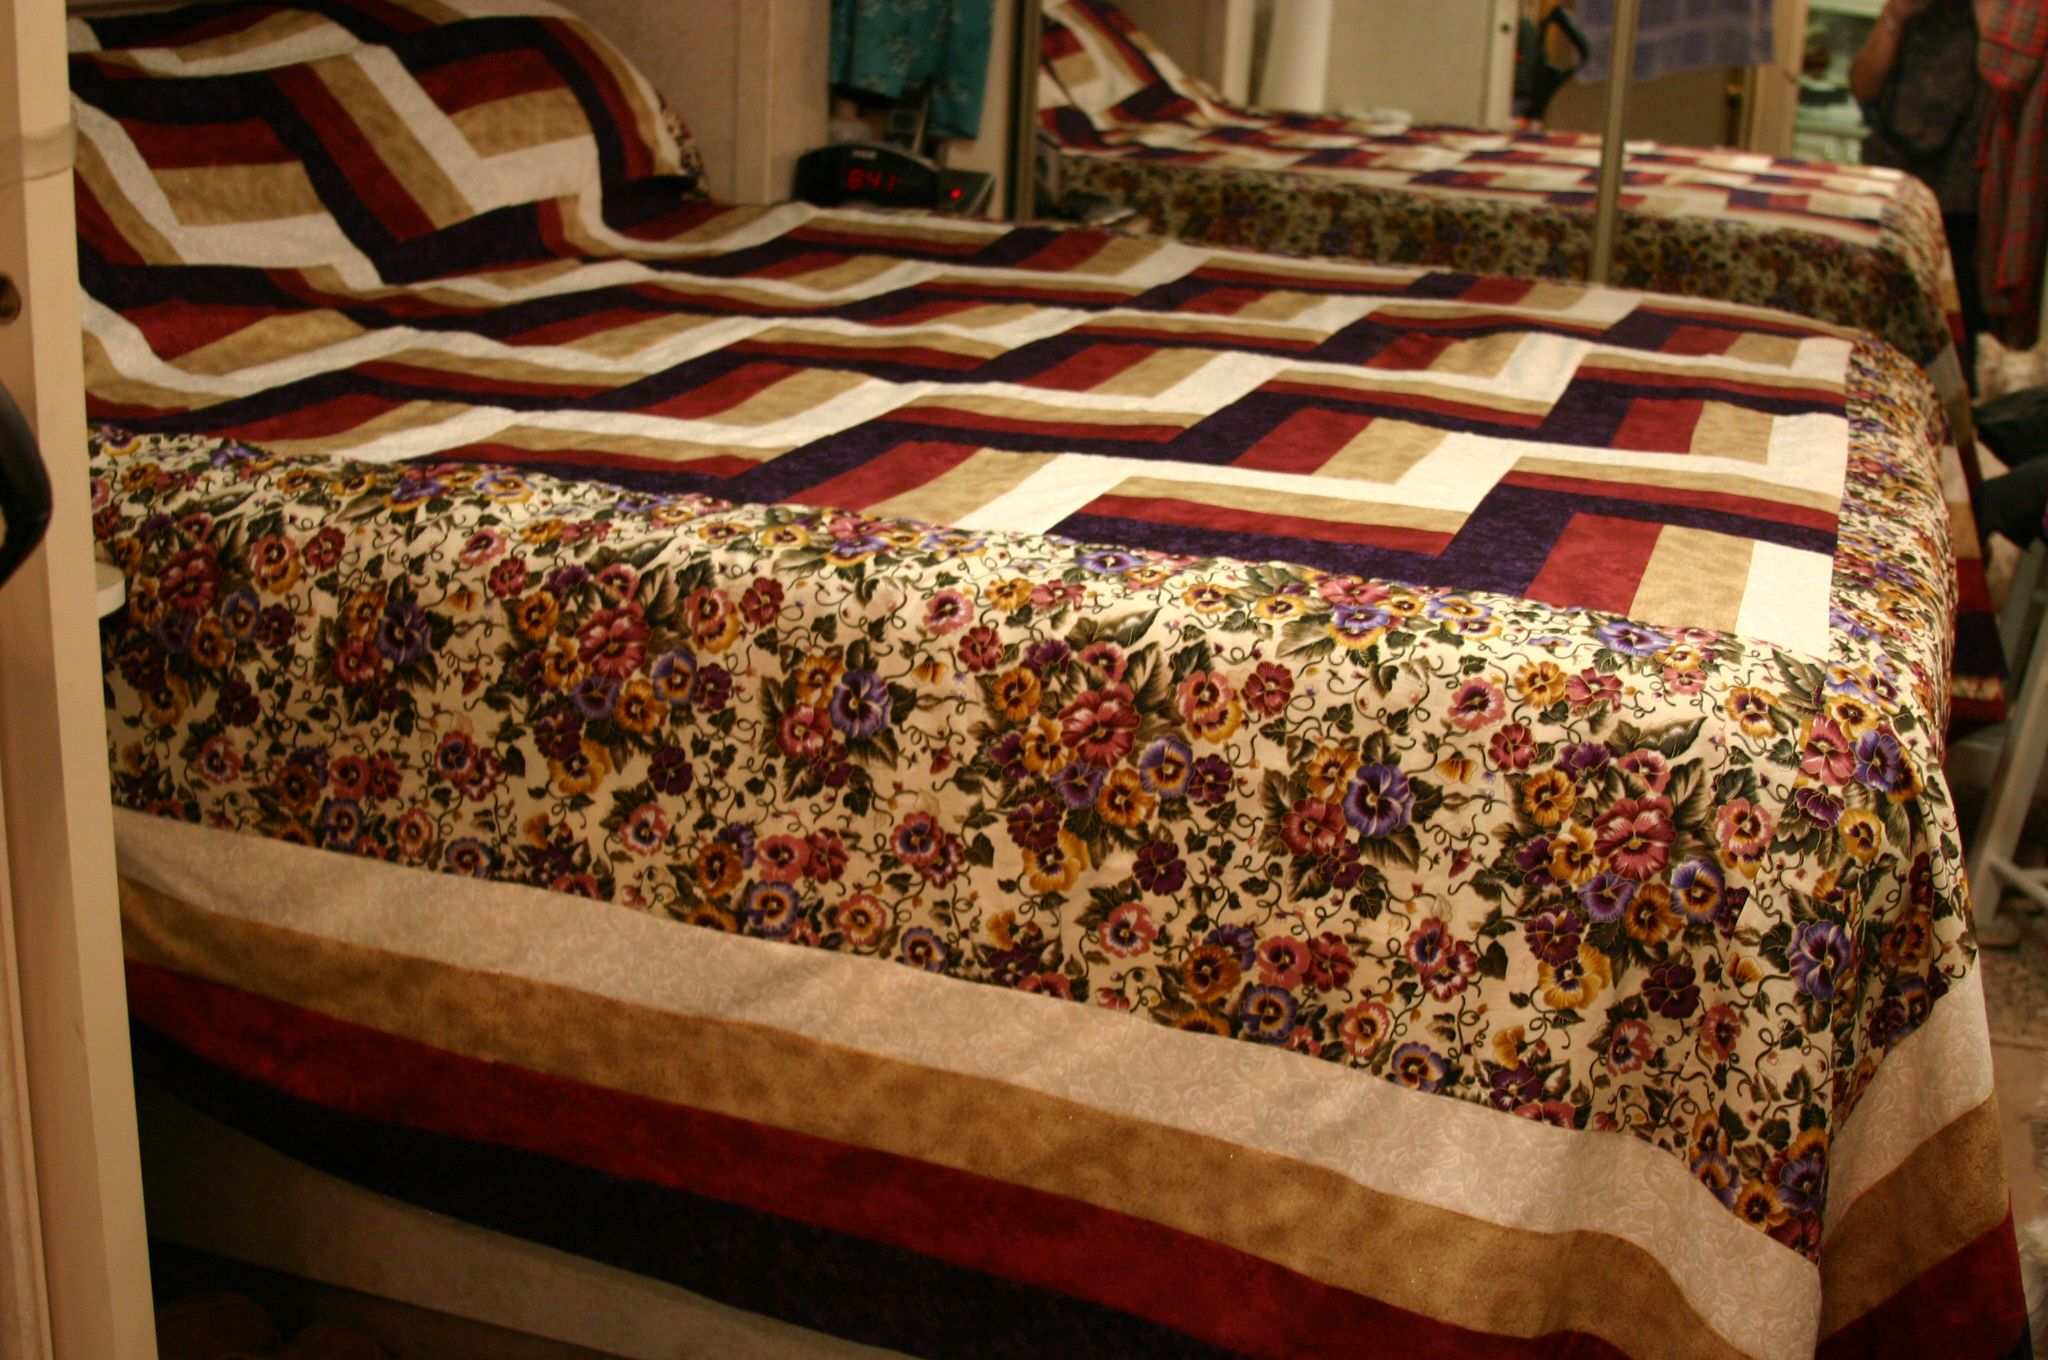 Rail Fence King Quilt ... pansies ...   Rail fence quilt ...